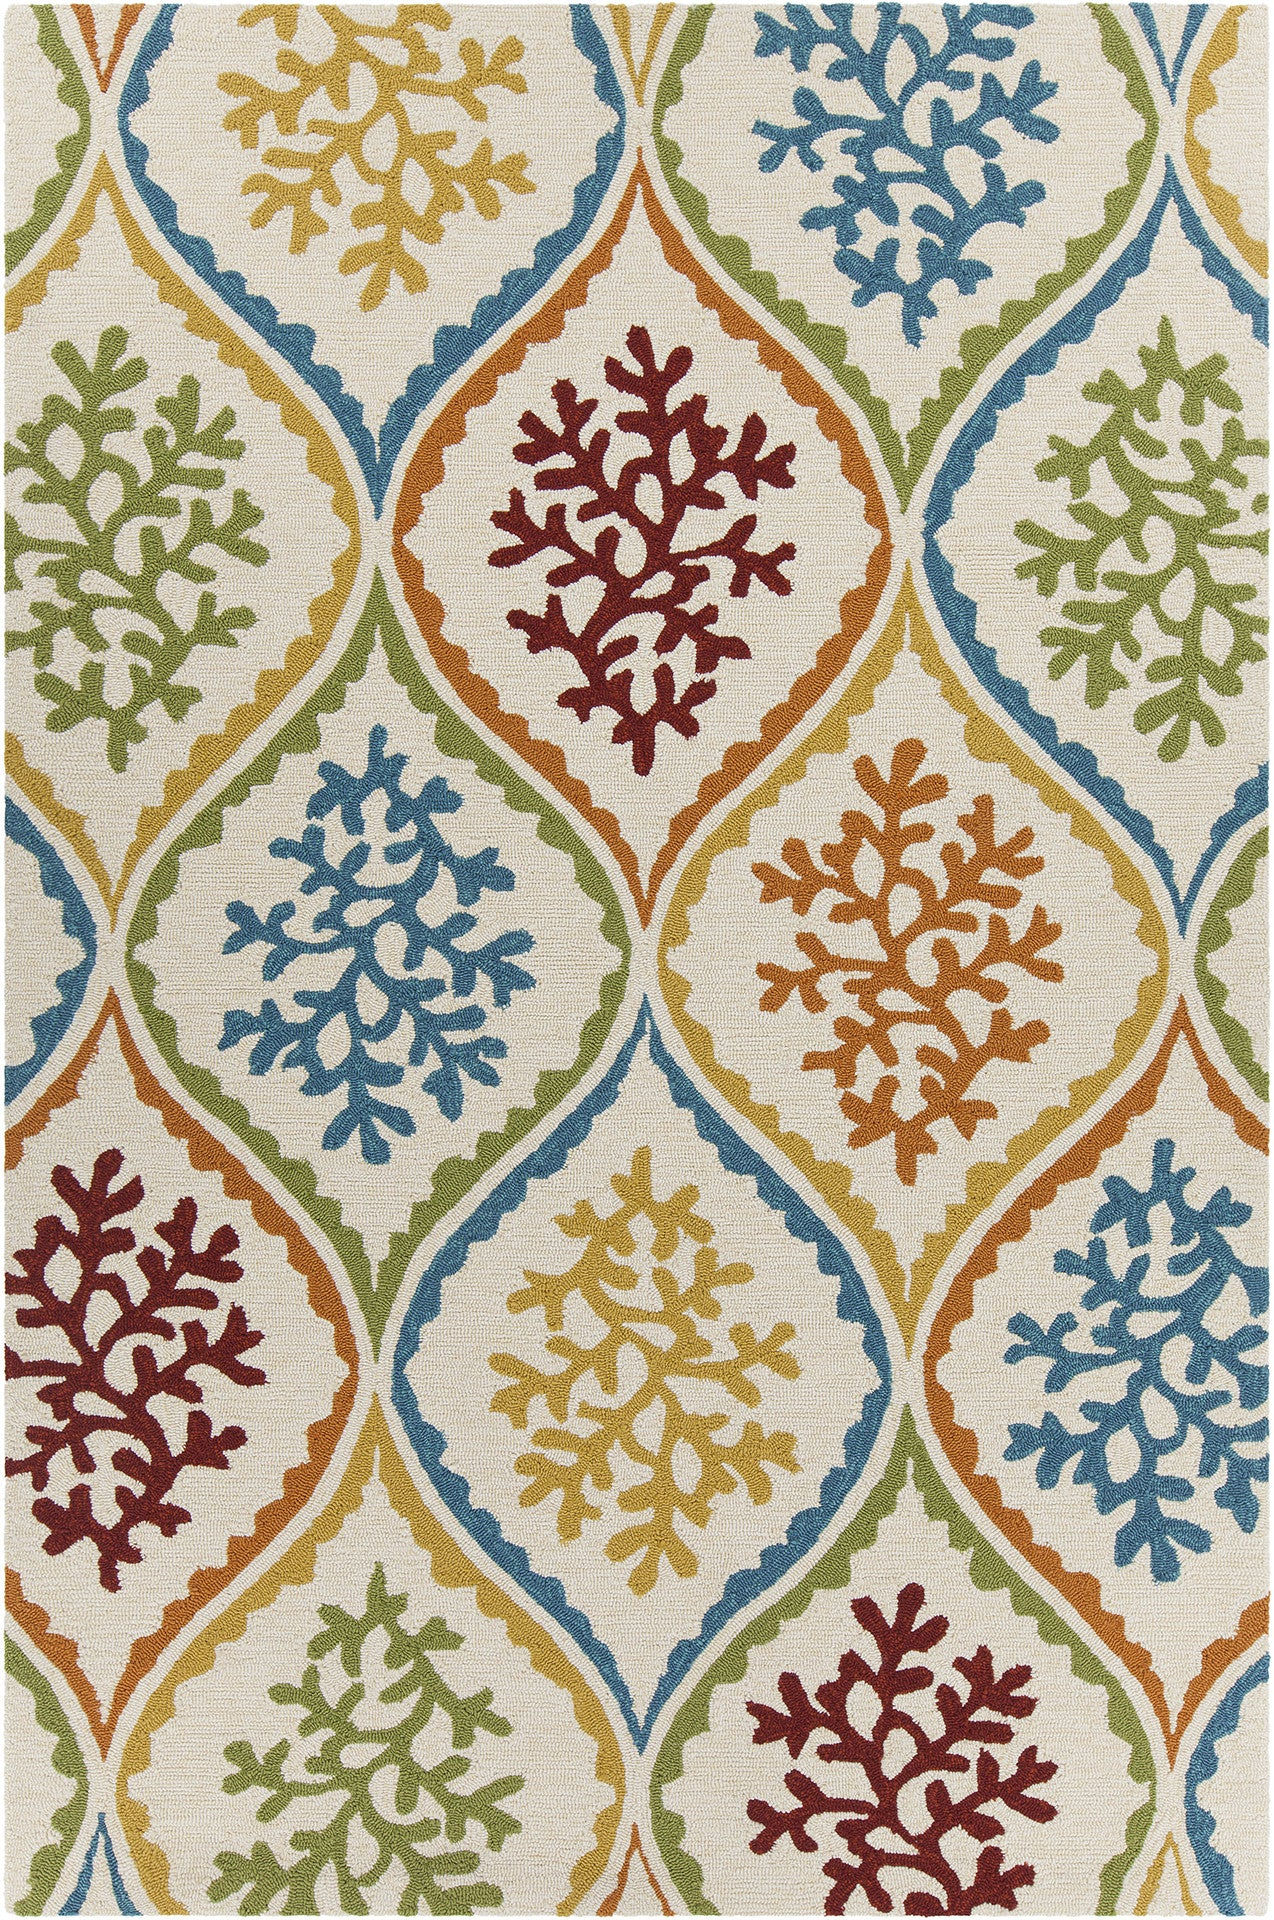 Terra Collection Hand Tufted Area Rug In Cream, Blue, Green, U0026 Red Design  By Chandra Rugs